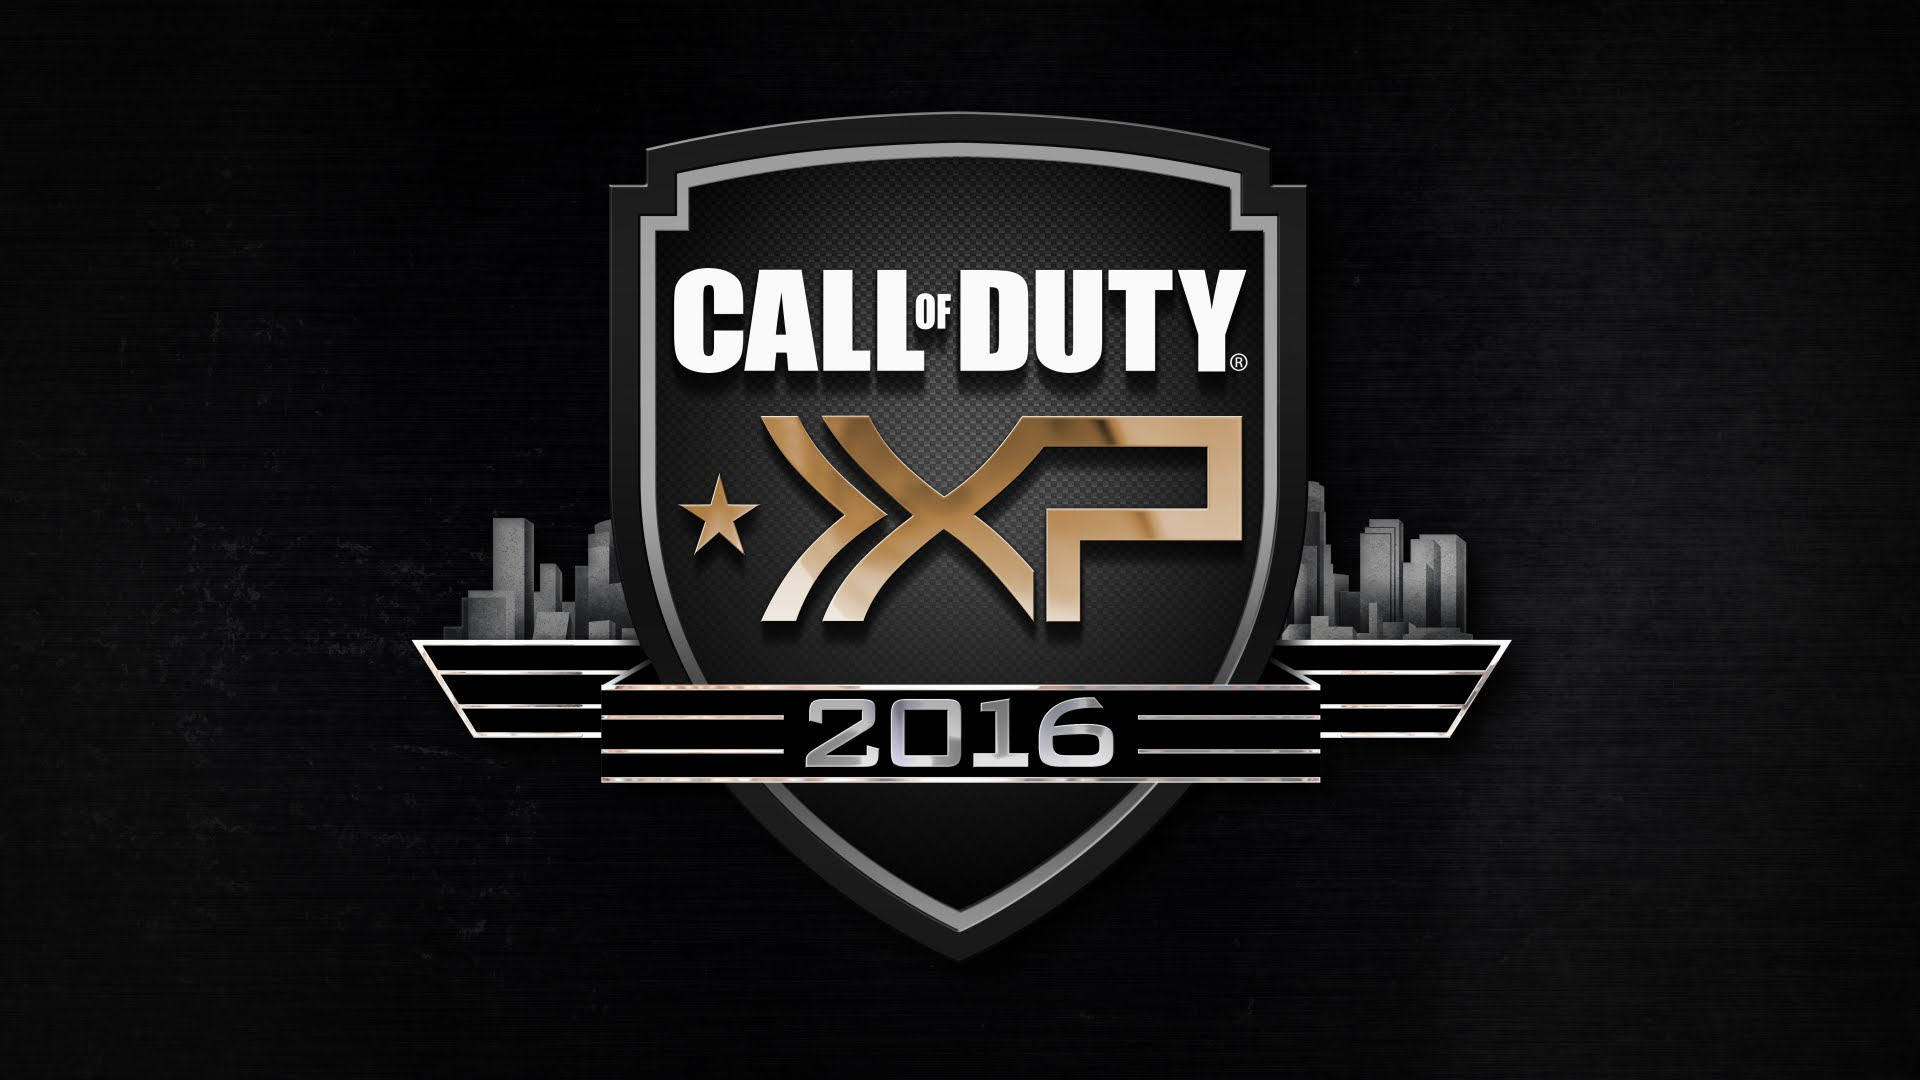 Call of Duty XP Event: First Day Impressions of Zombies, Championships, Virtual Reality